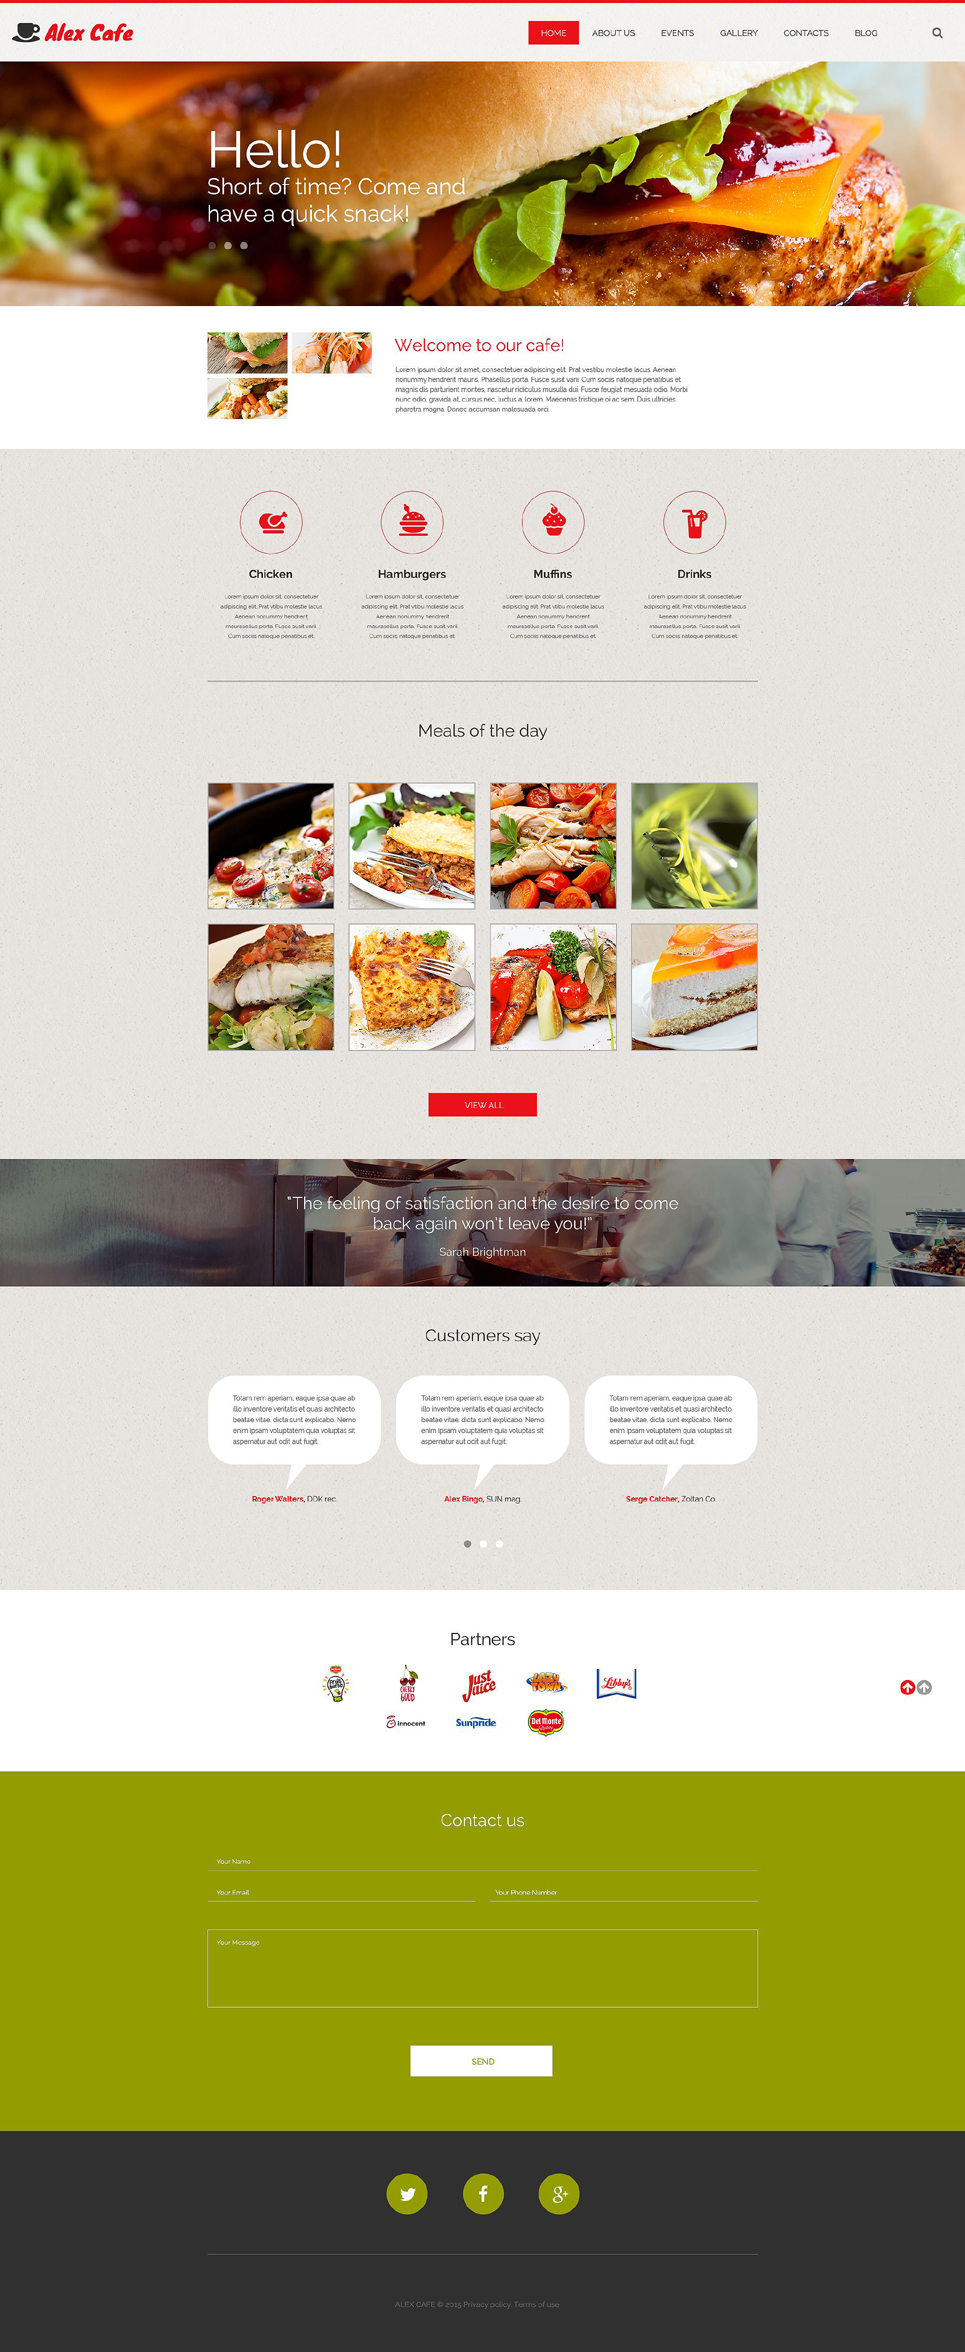 Collection Of Best Responsive Restaurant Wordpress Theme For Cafes